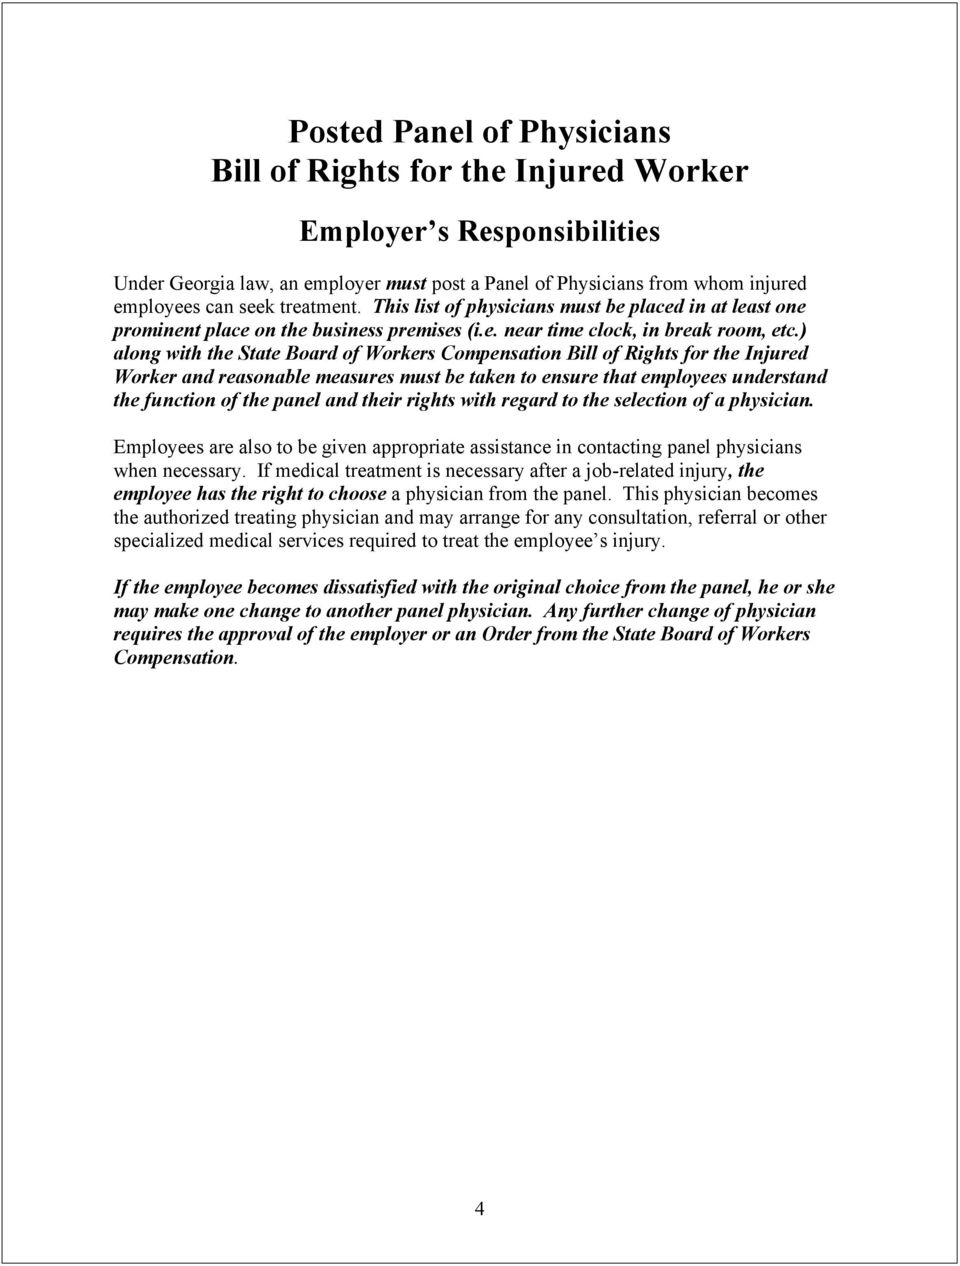 ) along with the State Board of Workers Compensation Bill of Rights for the Injured Worker and reasonable measures must be taken to ensure that employees understand the function of the panel and